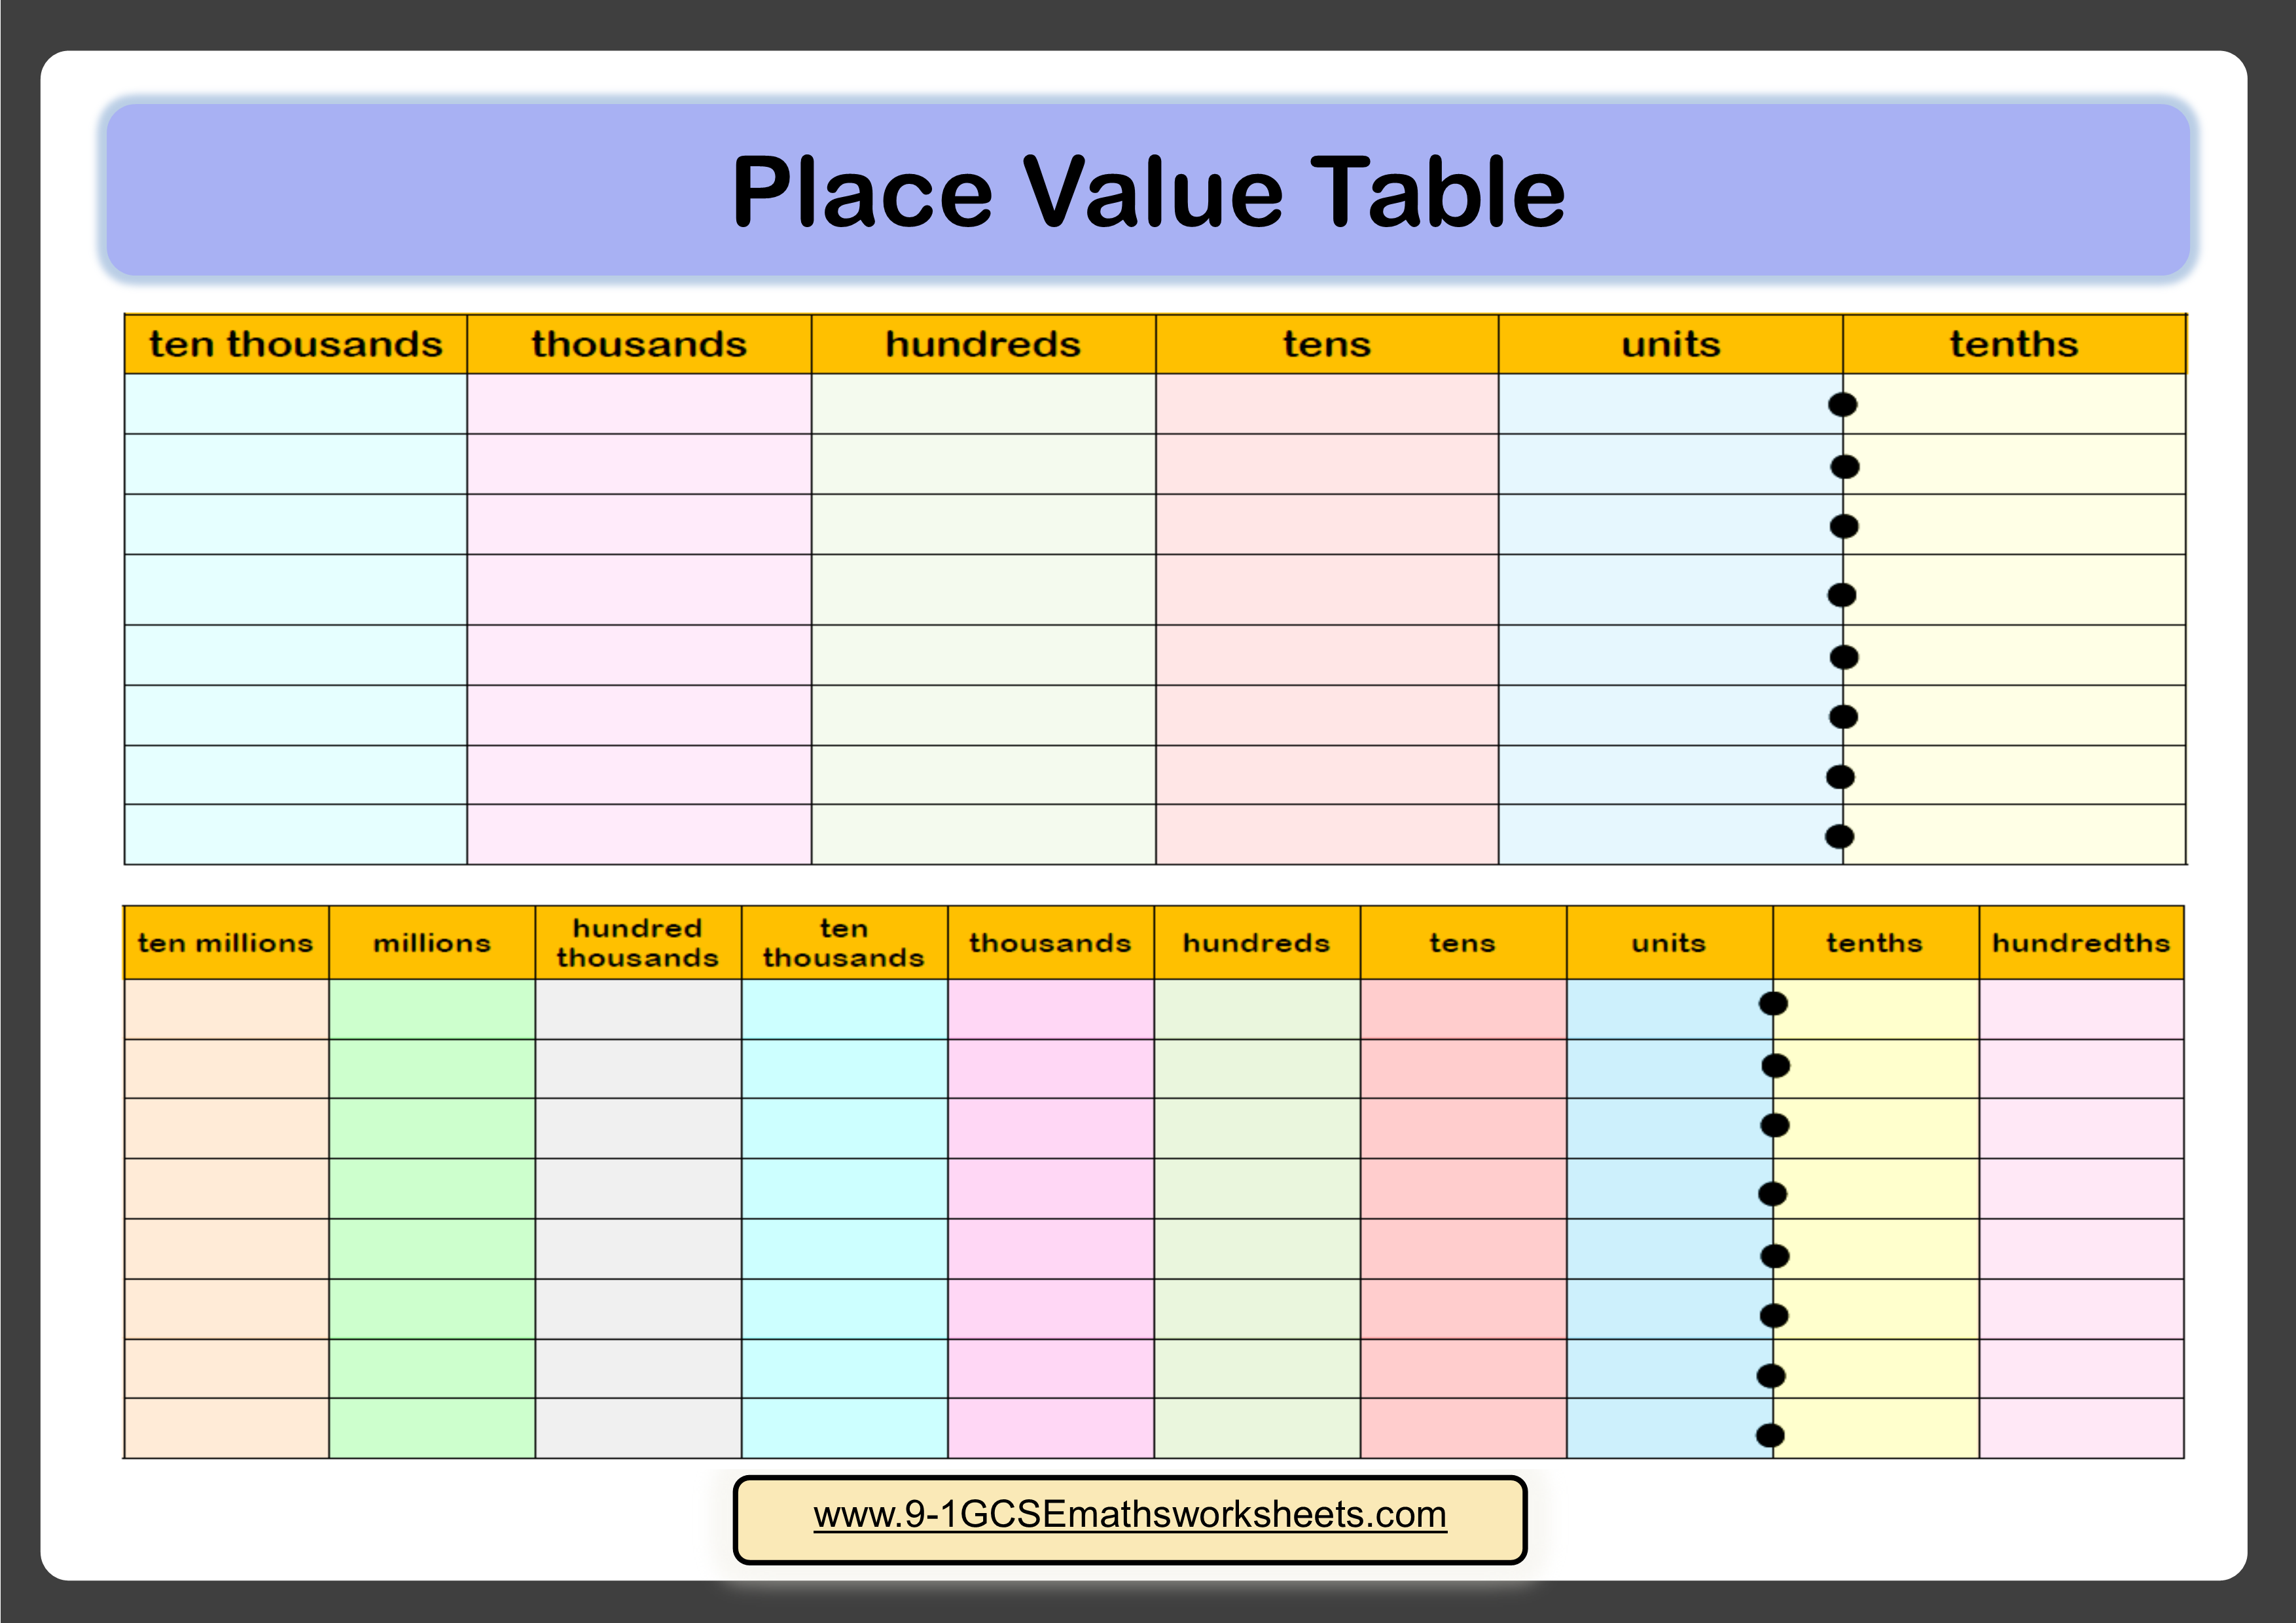 Place Value Help Sheet For Decimals And Place Value